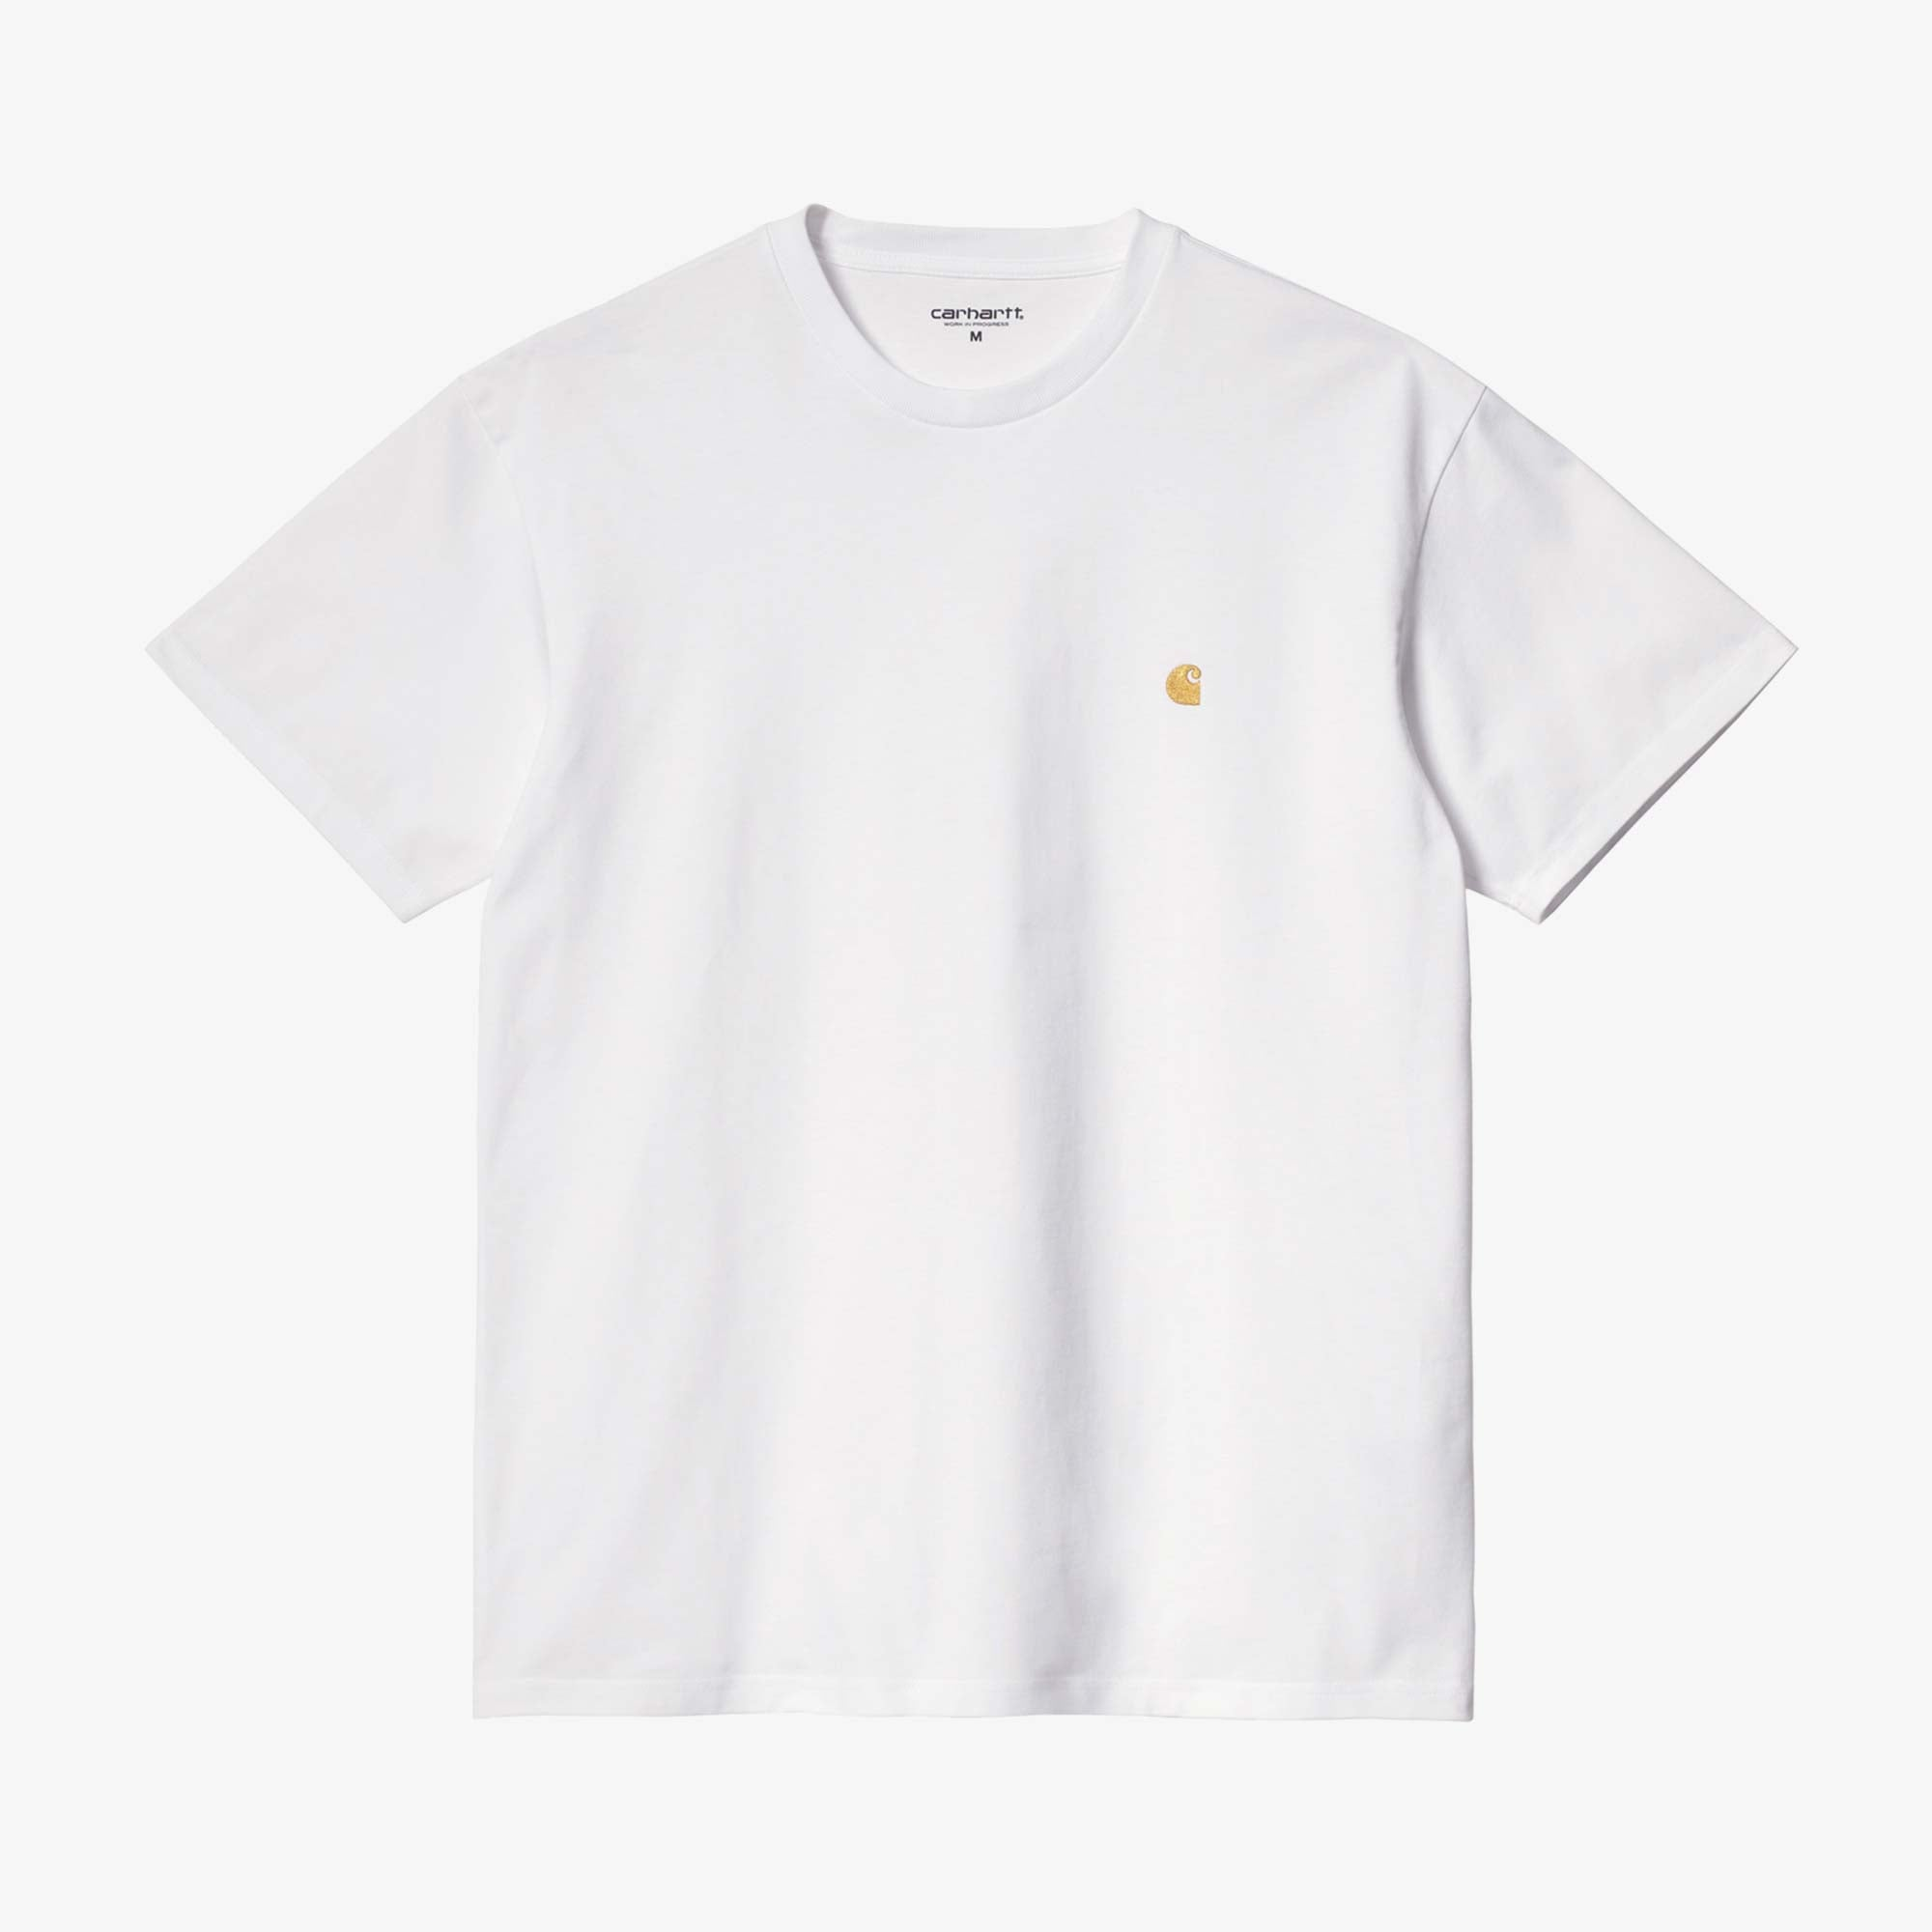 Carhartt WIP Chase Tee - White / Gold 1